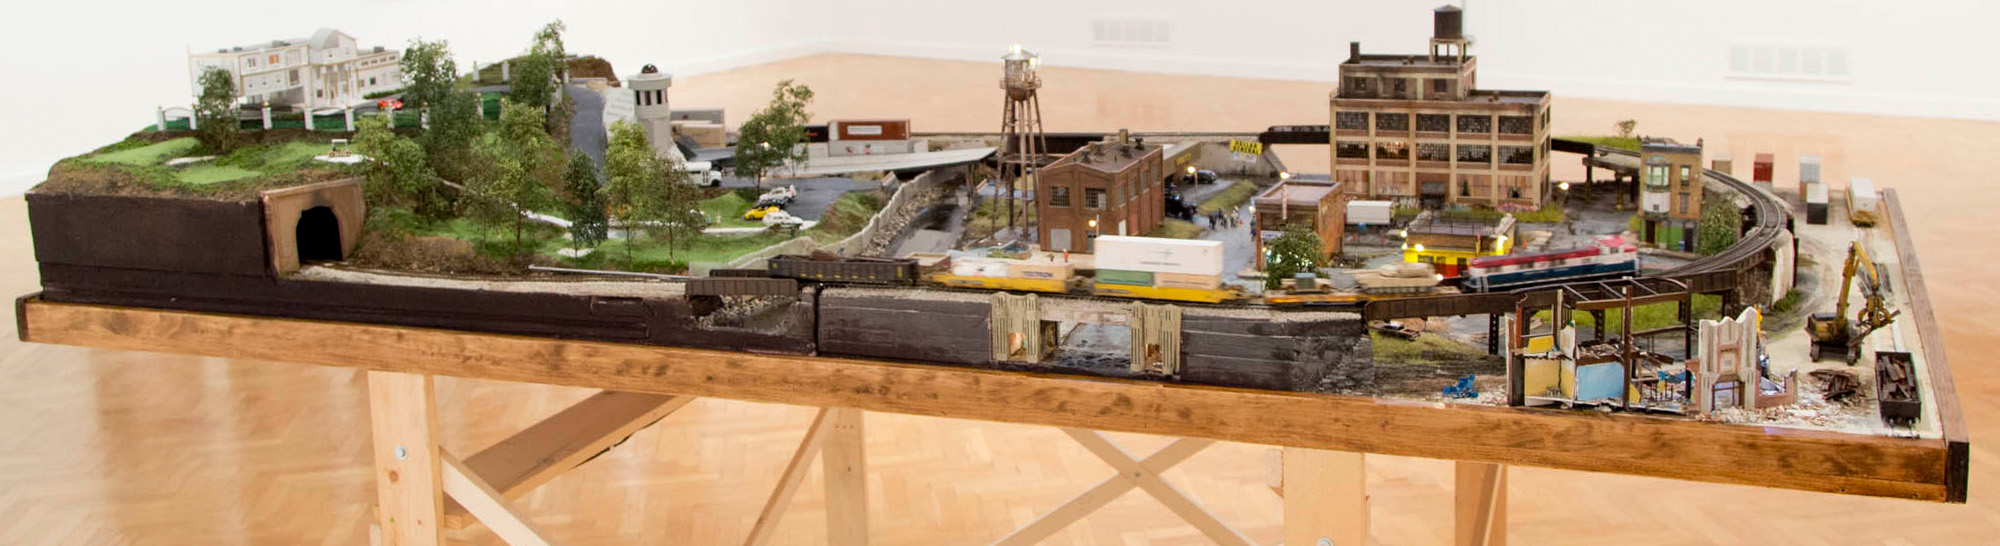 Model War Economy, First World, installation view. 4 x 8 x 2 ft.